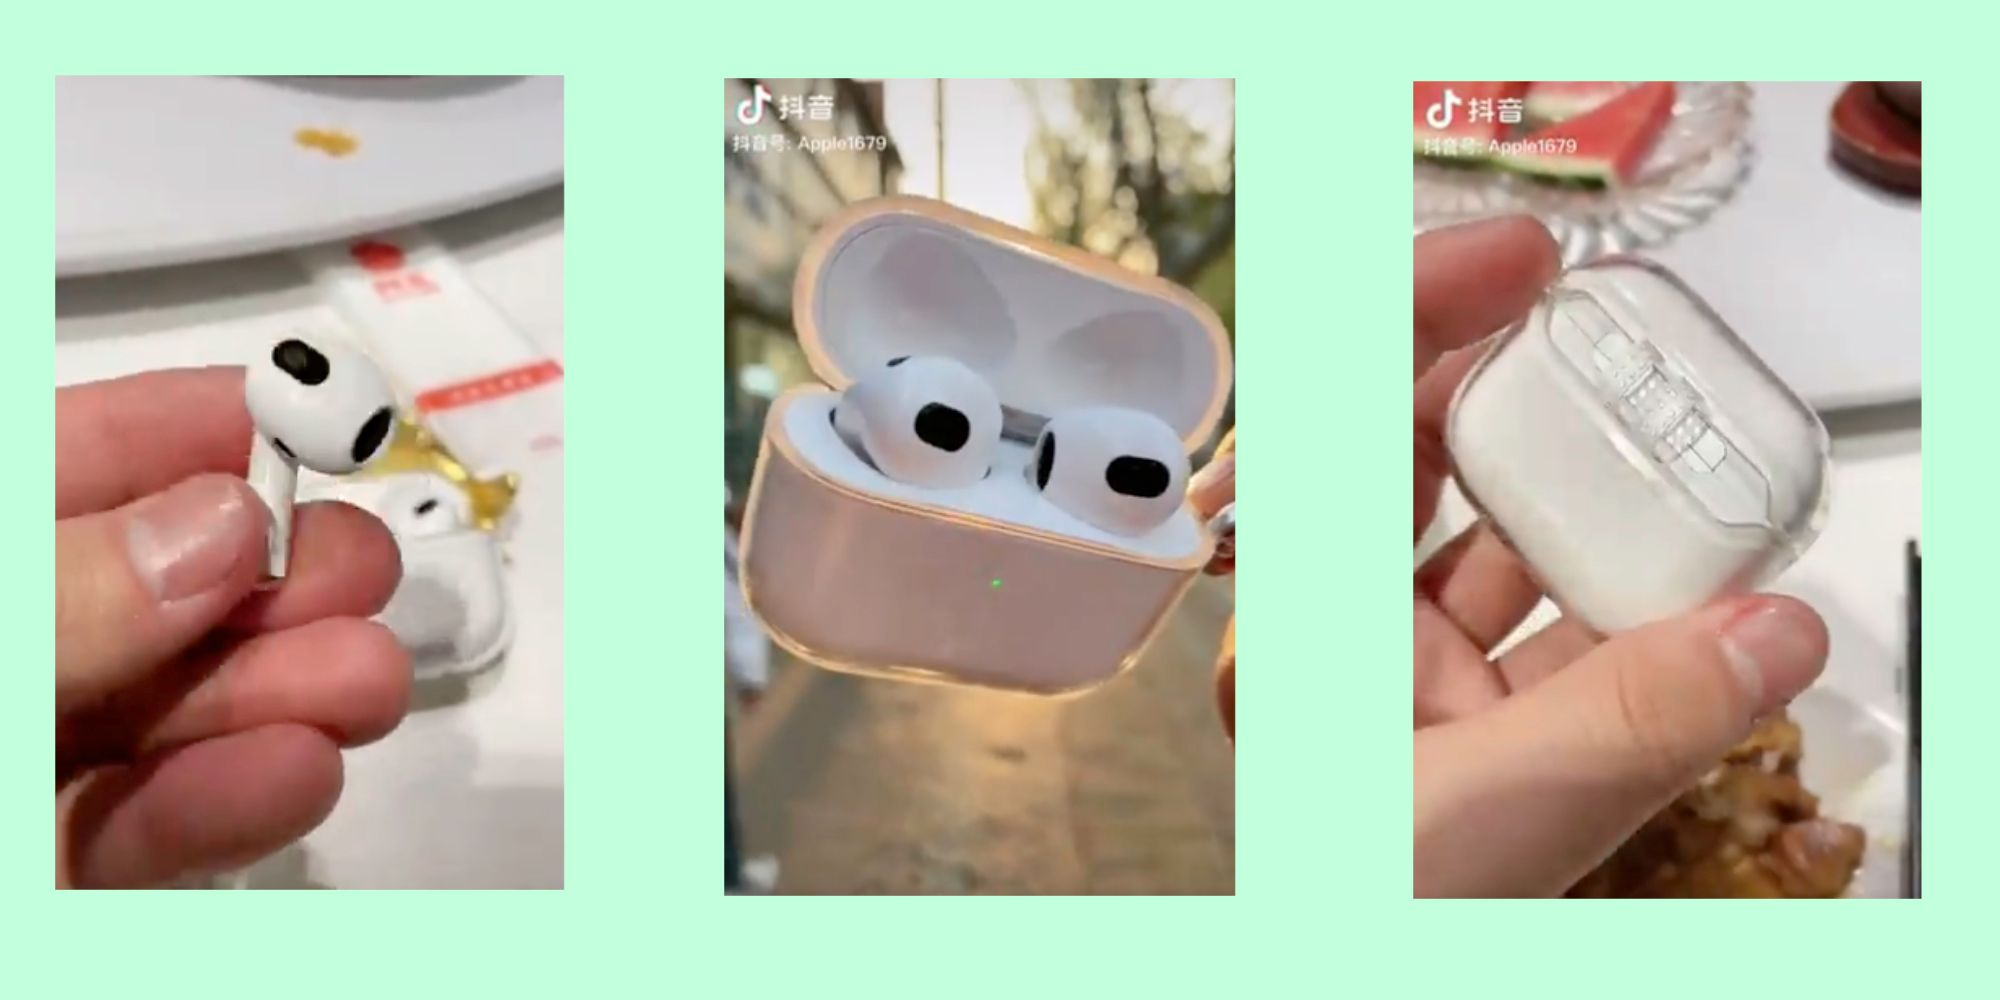 Do These Fake Airpods 3 Provide A Good Look At The Real Thing